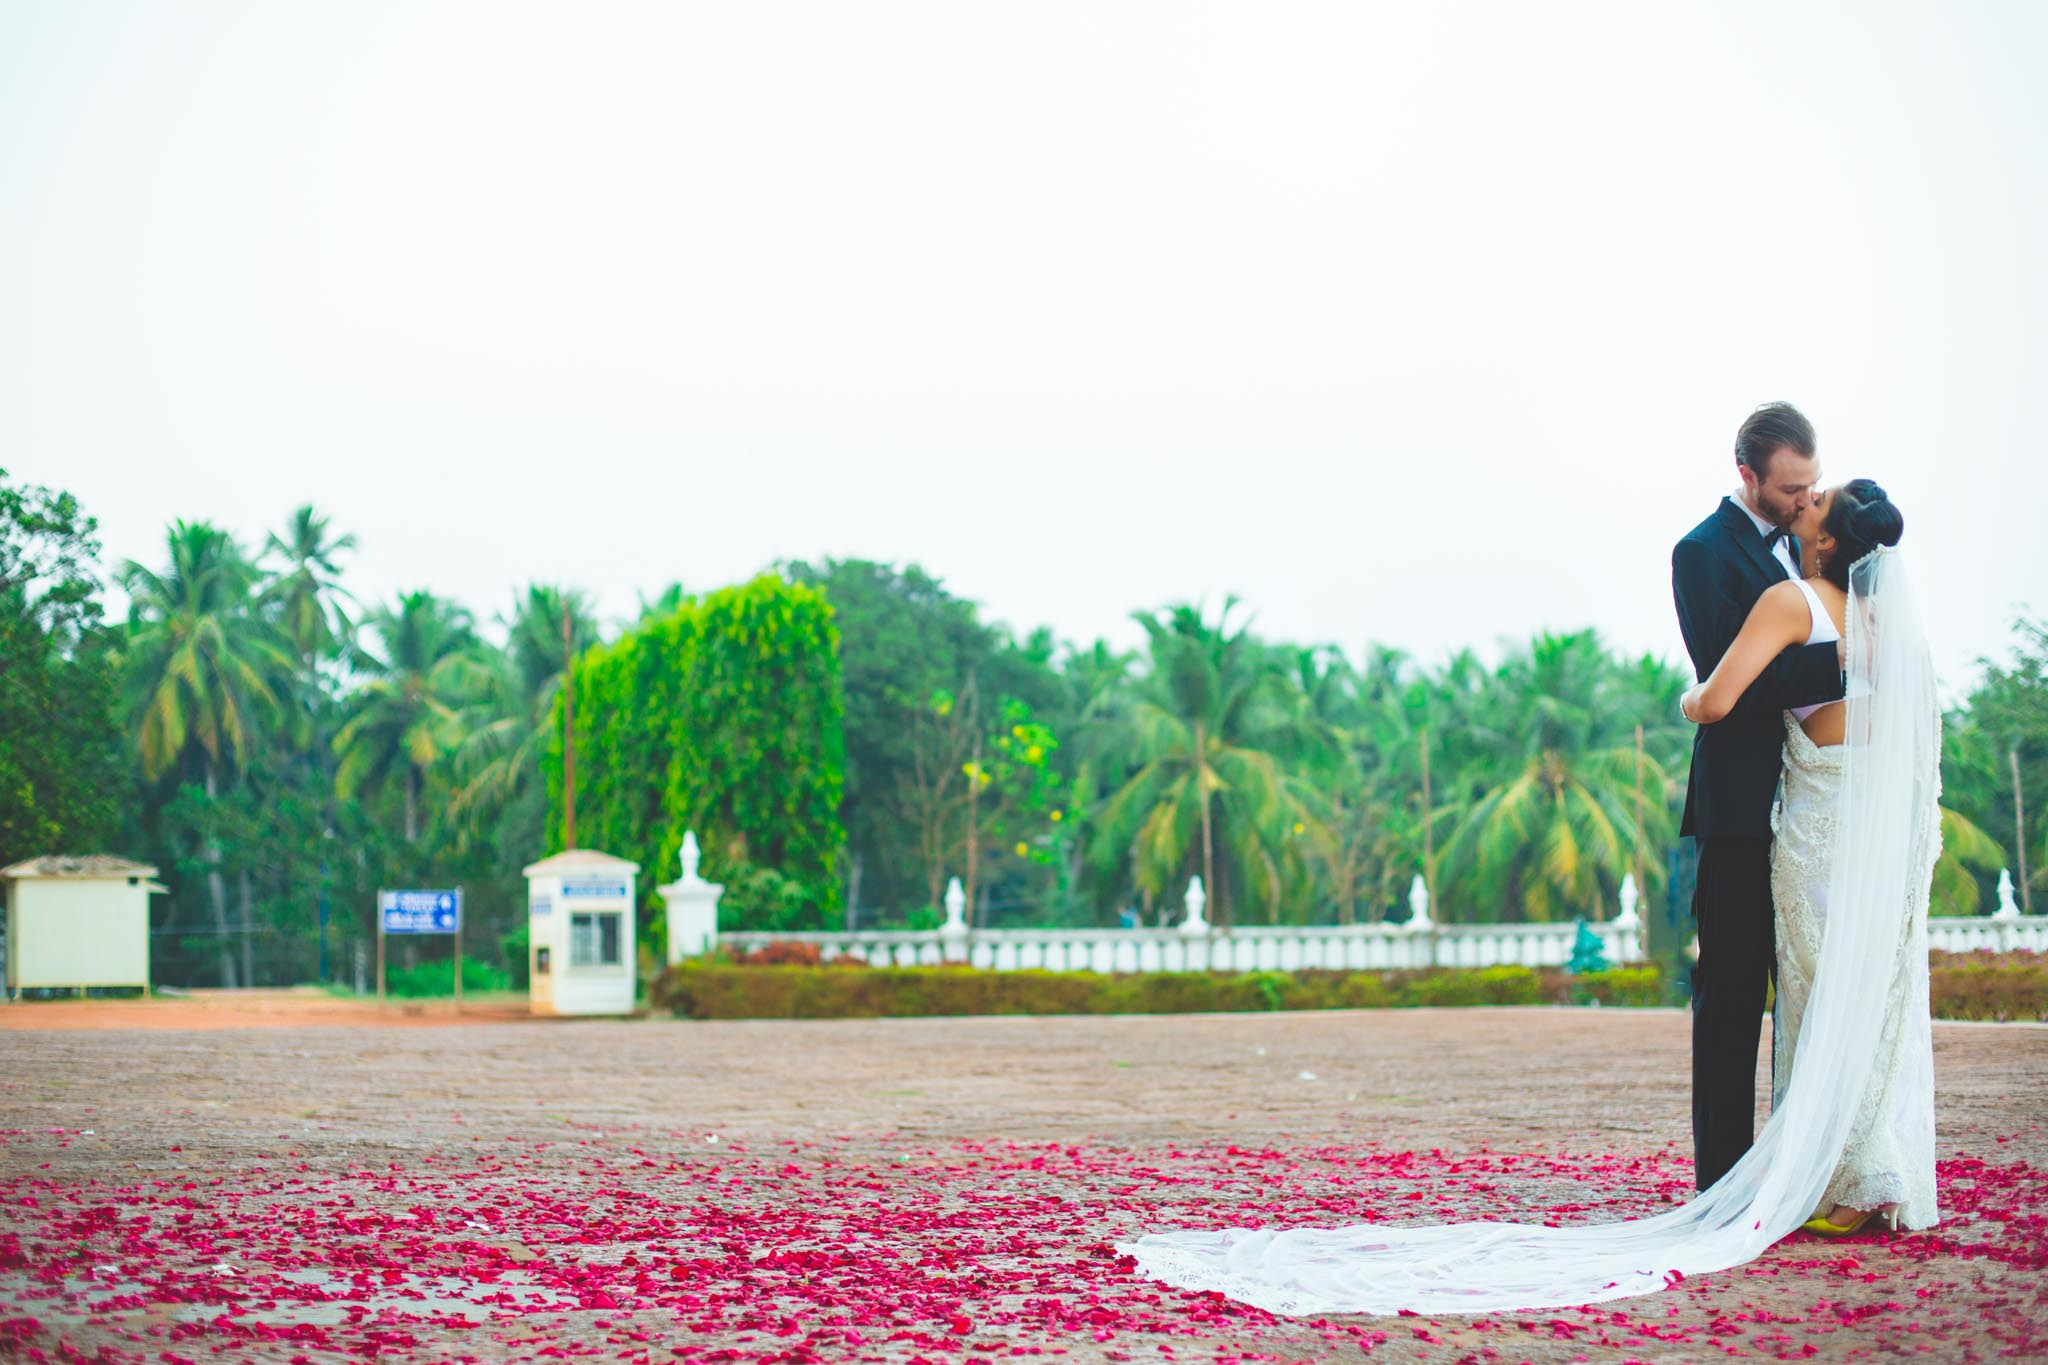 Big-Fat-Indian-Wedding-Destination-Goa-Cidade-de-goa-whatknot-candid-photography-117